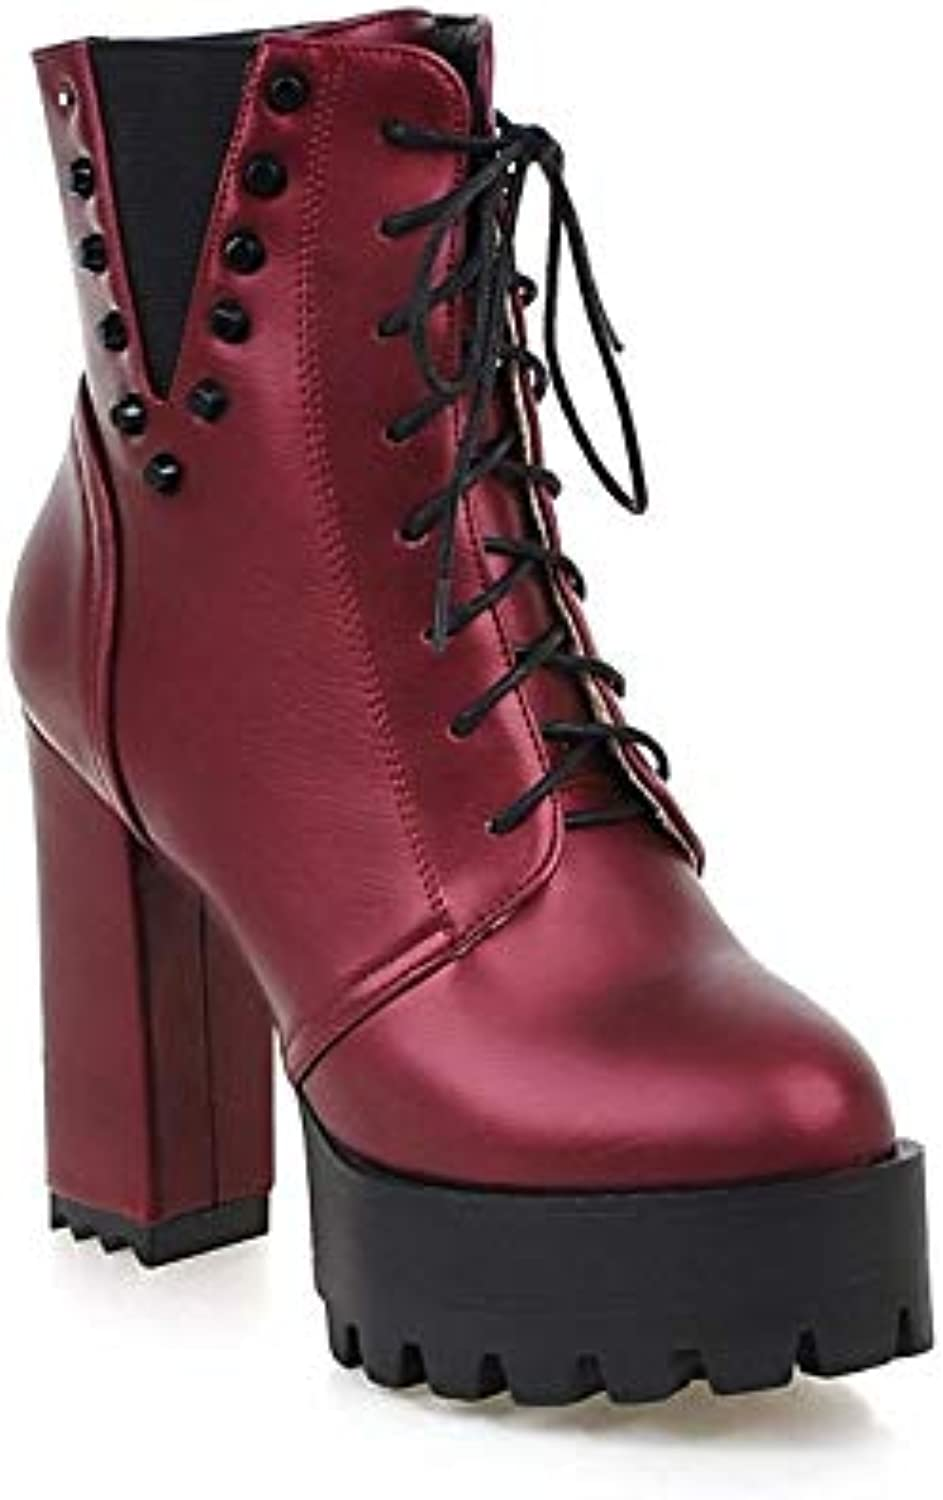 4a6c6850a58 Fashion rivets autumn and winter retro round head thick bottom bottom bottom  super high heel large size women s boots B07J6FVYBC Parent 079334